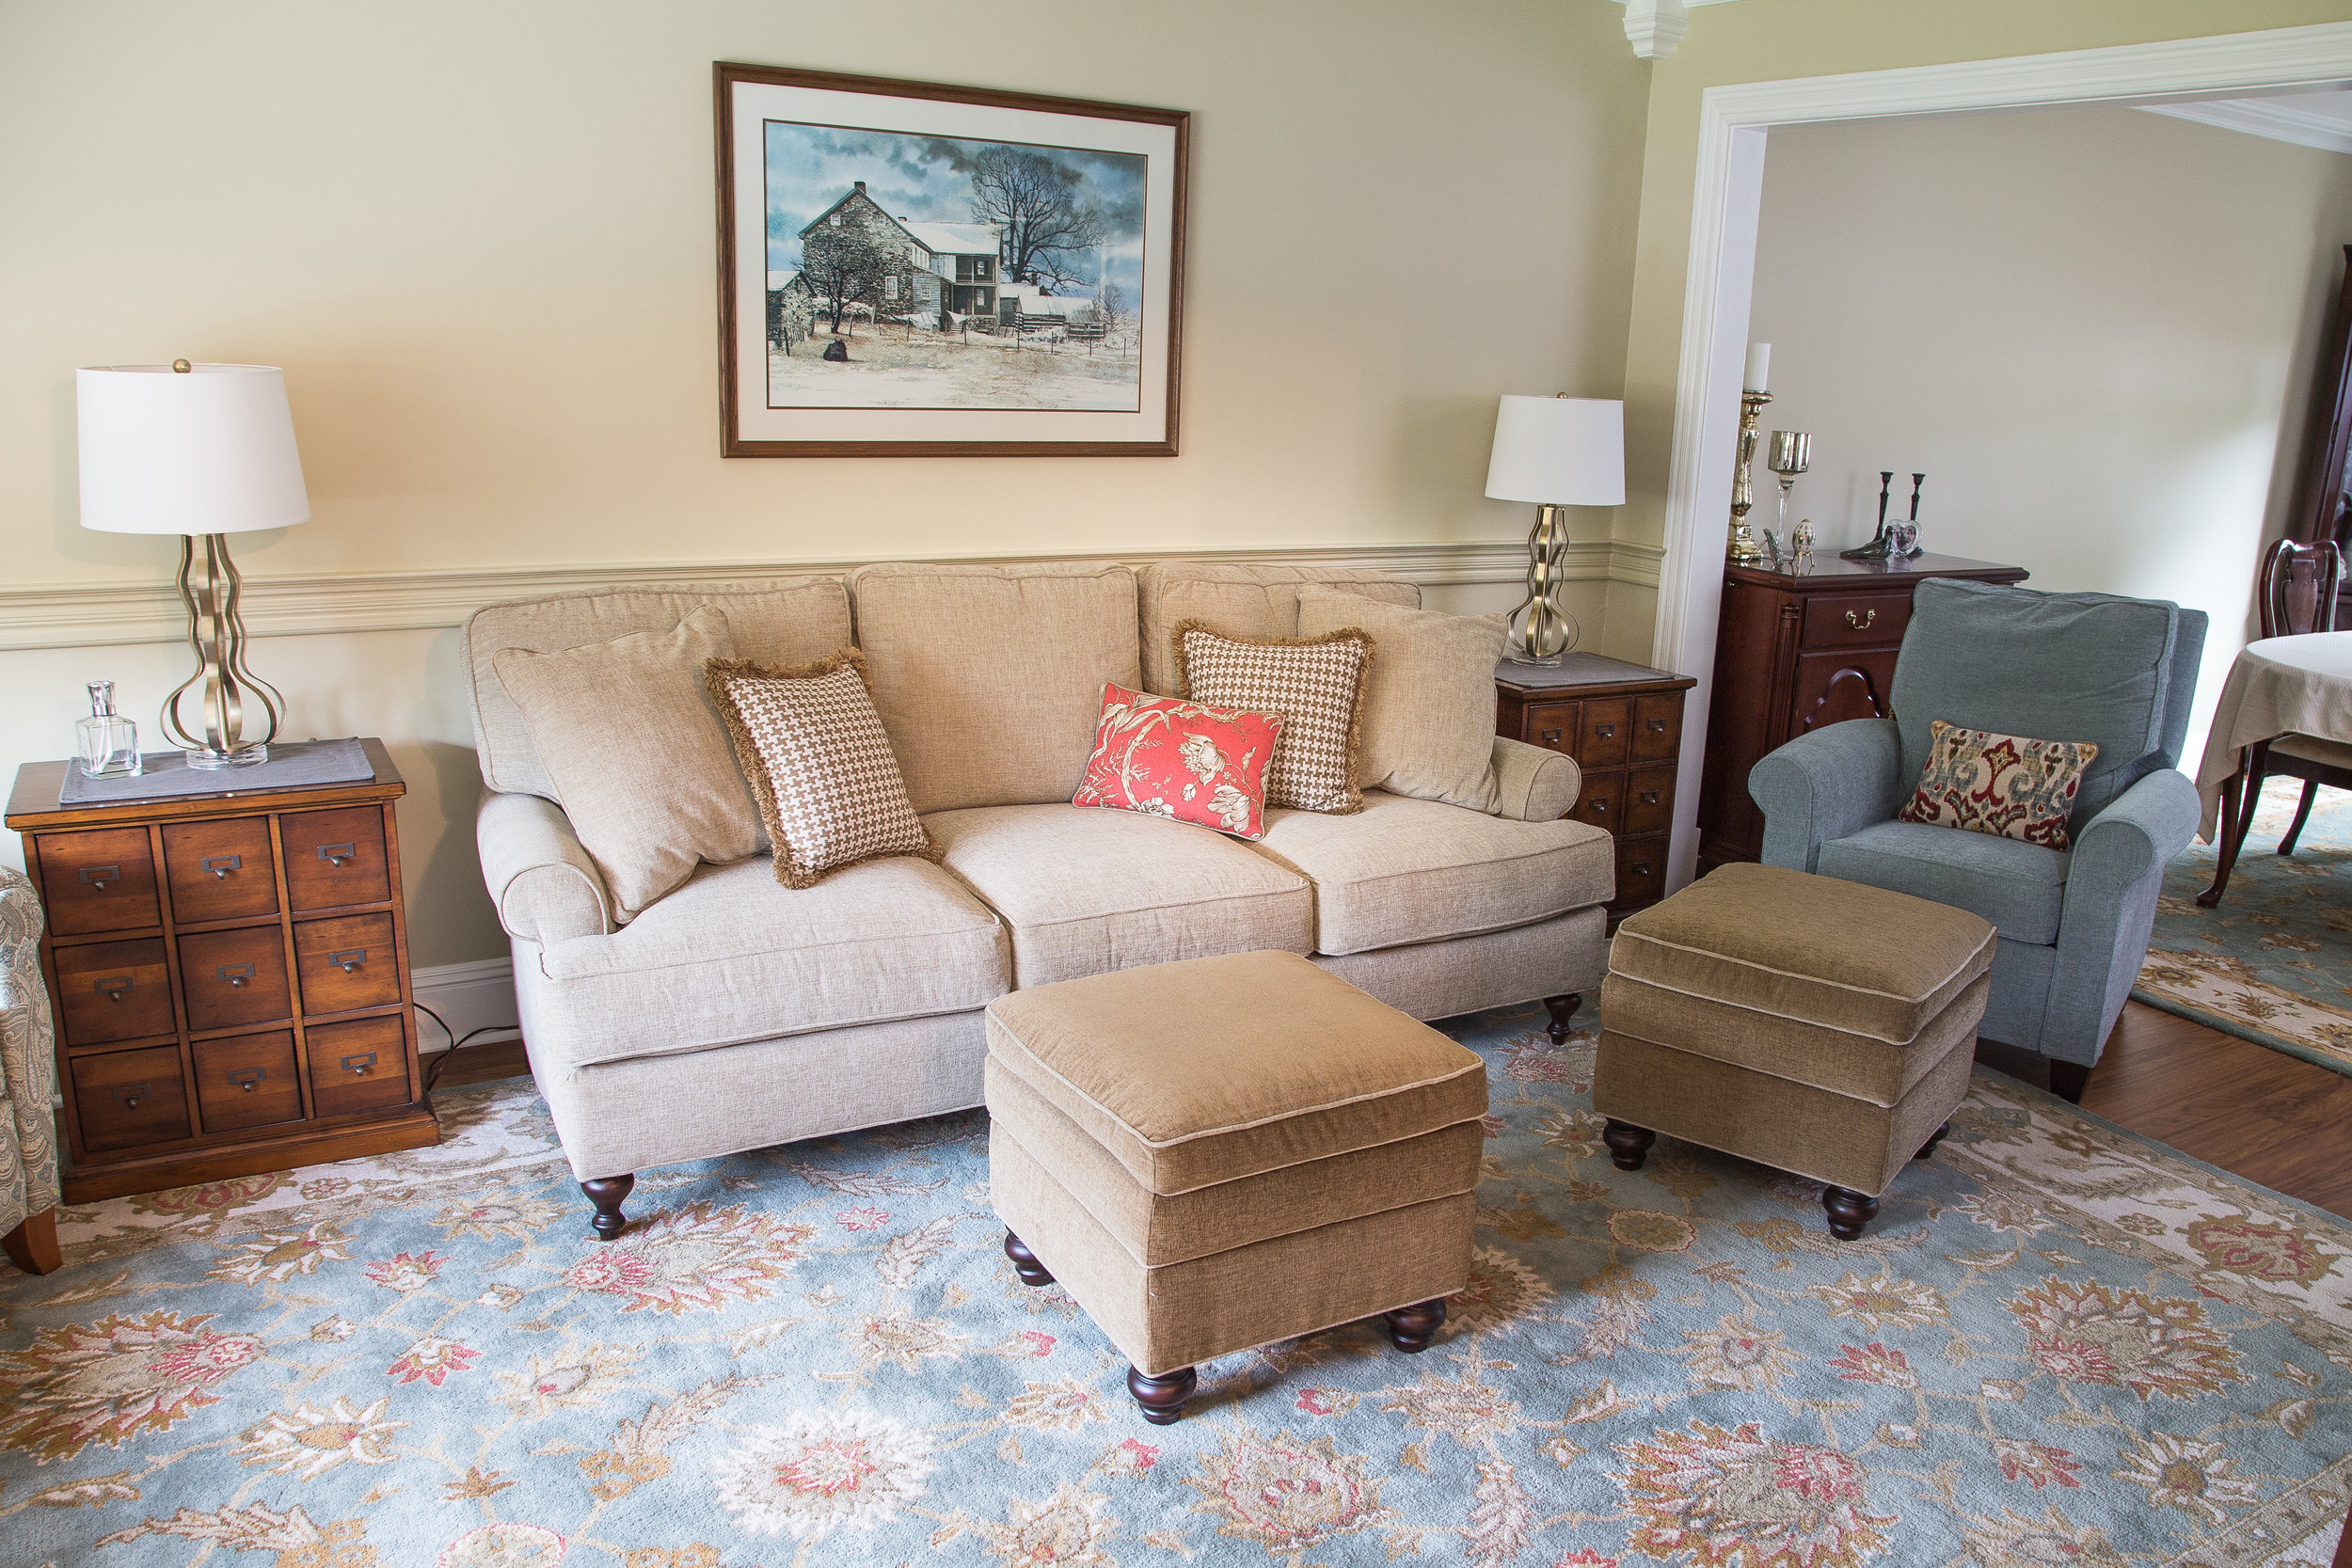 Colorful transitional Family Room, with upholstery that stands up to kids and dogs, Mercer County, NJ